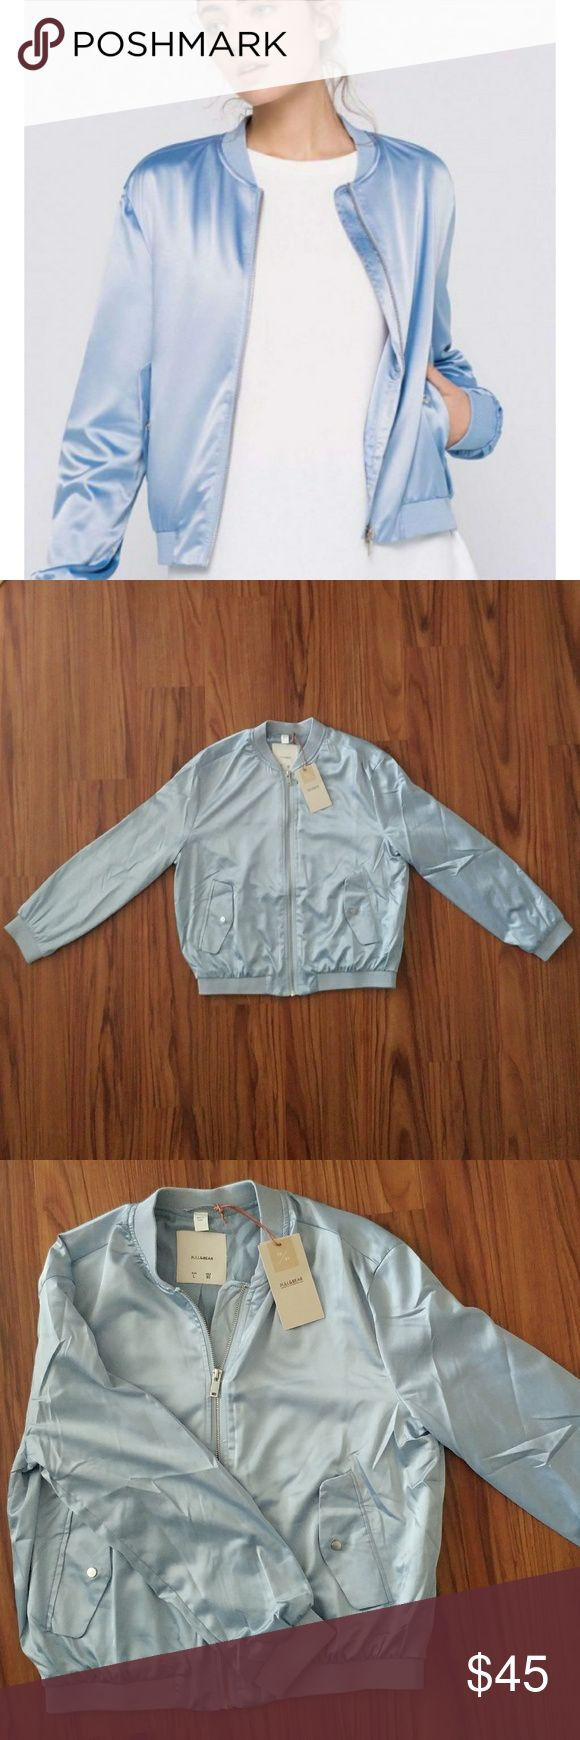 Pull and Bear ice blue bomber Pull and Bear ice blue silk bomber jacket. New with tags, never been worn. Lining 100% viscose, exterior 96% polyester and 4% elastane. Lightweight. Pull and bear is a sister company to Zara. Pull&Bear Jackets & Coats